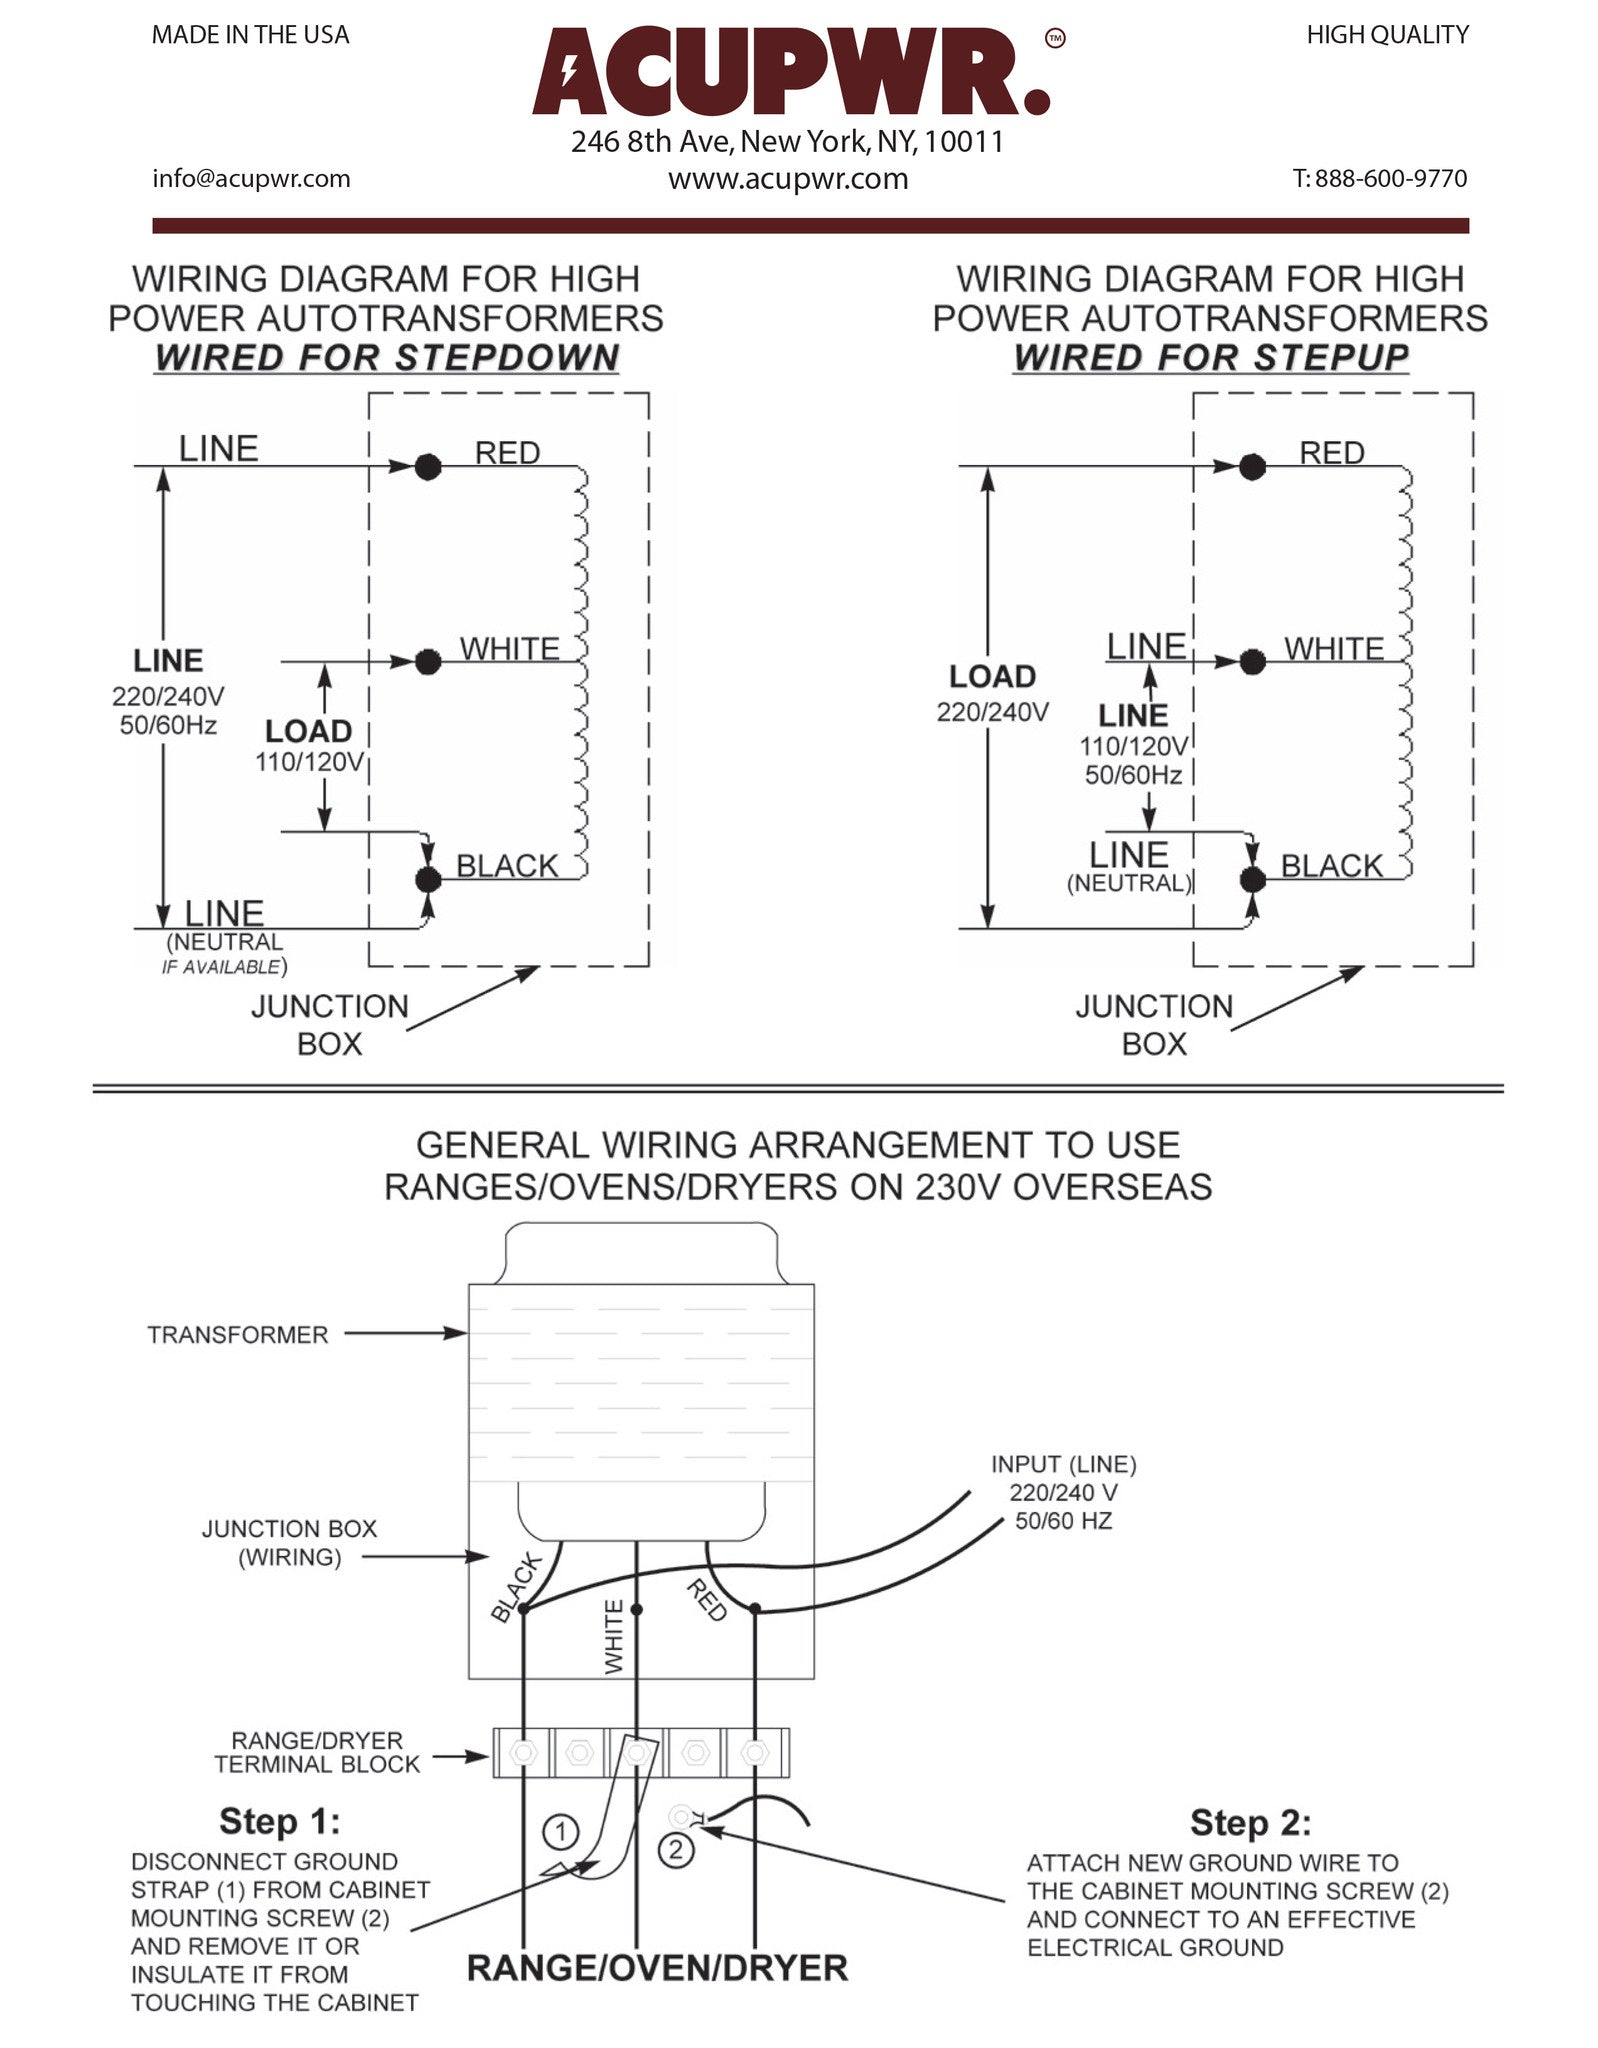 Aduh_Diagram_38ee0227 0107 4a34 96d3 1a7cb27ac531?v=1478031456 6000 tru watts™ step up step down hard wire voltage with knock  at gsmportal.co